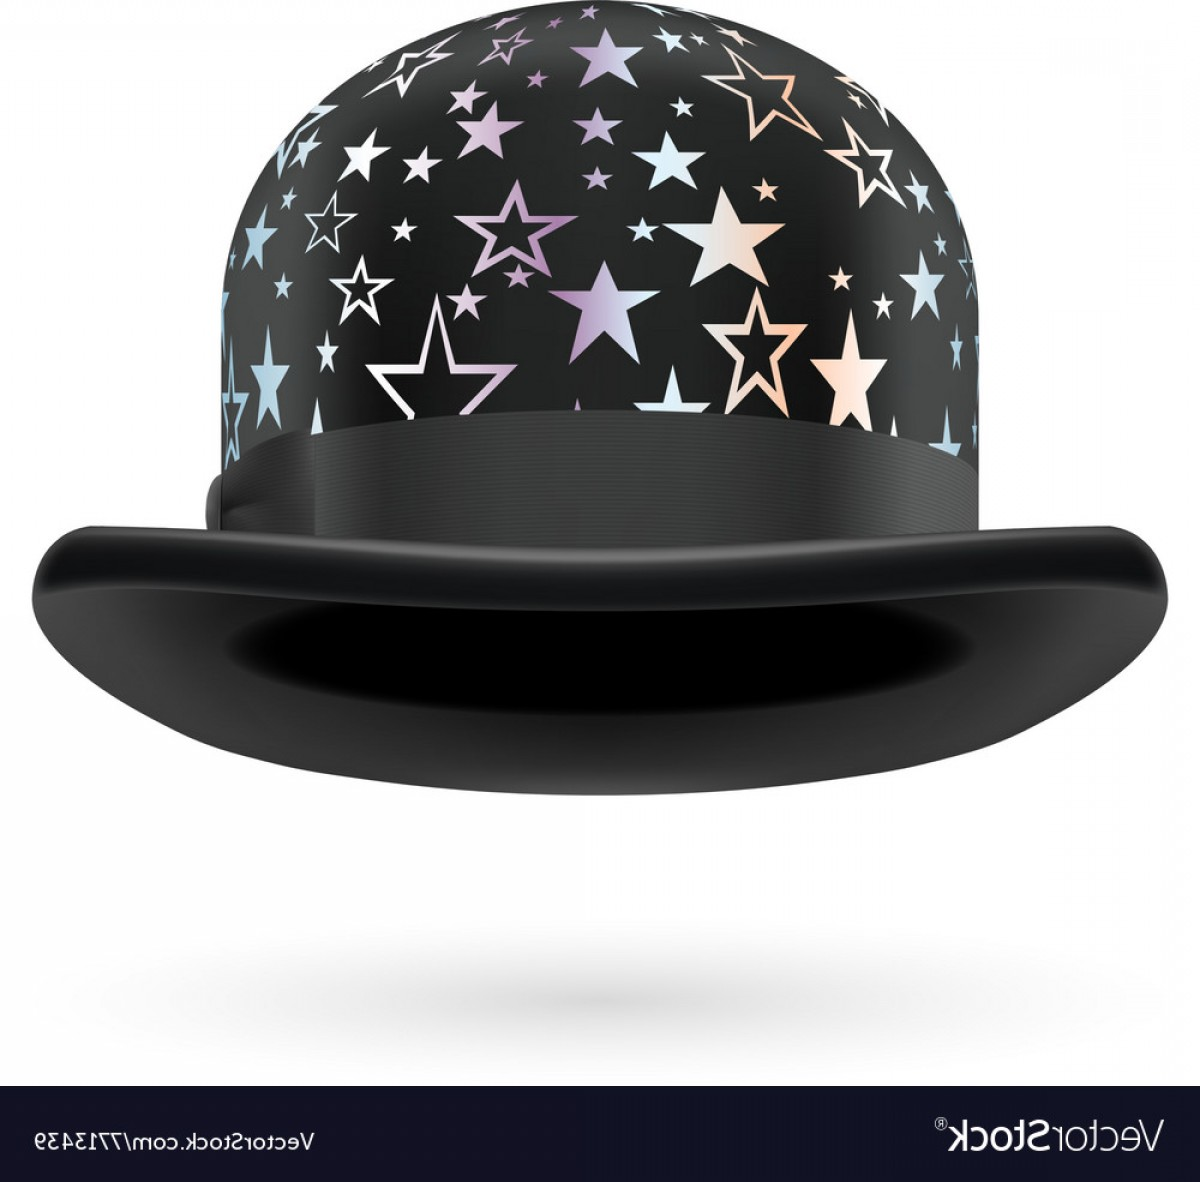 Bowler Hat Vector: Black Starred Bowler Hat Vector